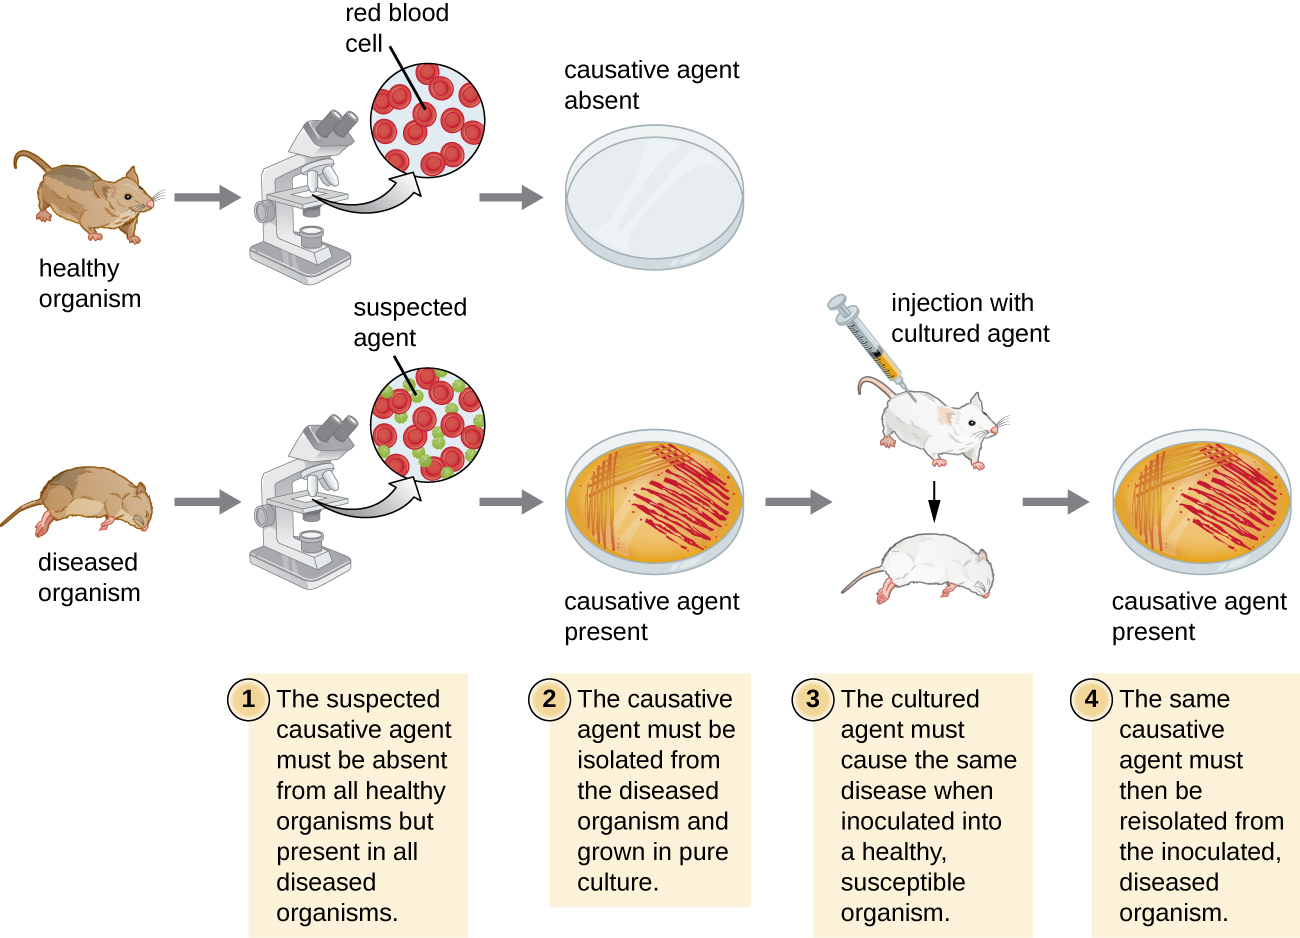 A diagram Koch's postulates. 1 – The suspected causative agent must be absent from all healthy organisms but present in all diseased organisms. This is demonstrated by looking at slides under a microscope from a sick mouse and seeing the suspected agent. A slide from a healthy mouse only shows healthy red blood cells. 2 – The causative agent must be isolated from the diseased organism and grown in pure culture. This is demonstrated by showing grown on a petri plate from the sick mouse and no growth from the healthy mouse.  3 – The cultured agend must cause the same disease when inoculated into a healthy, susceptible organism. This is demonstrated by injecting a healthy mouse with the cultured agent and having that mouse get sick. 4 – The same causative agent must then be reisolated from the inoculated diseased organism. This is demonstrated by a petri plate from this last mouse showing growth of the causative agent.